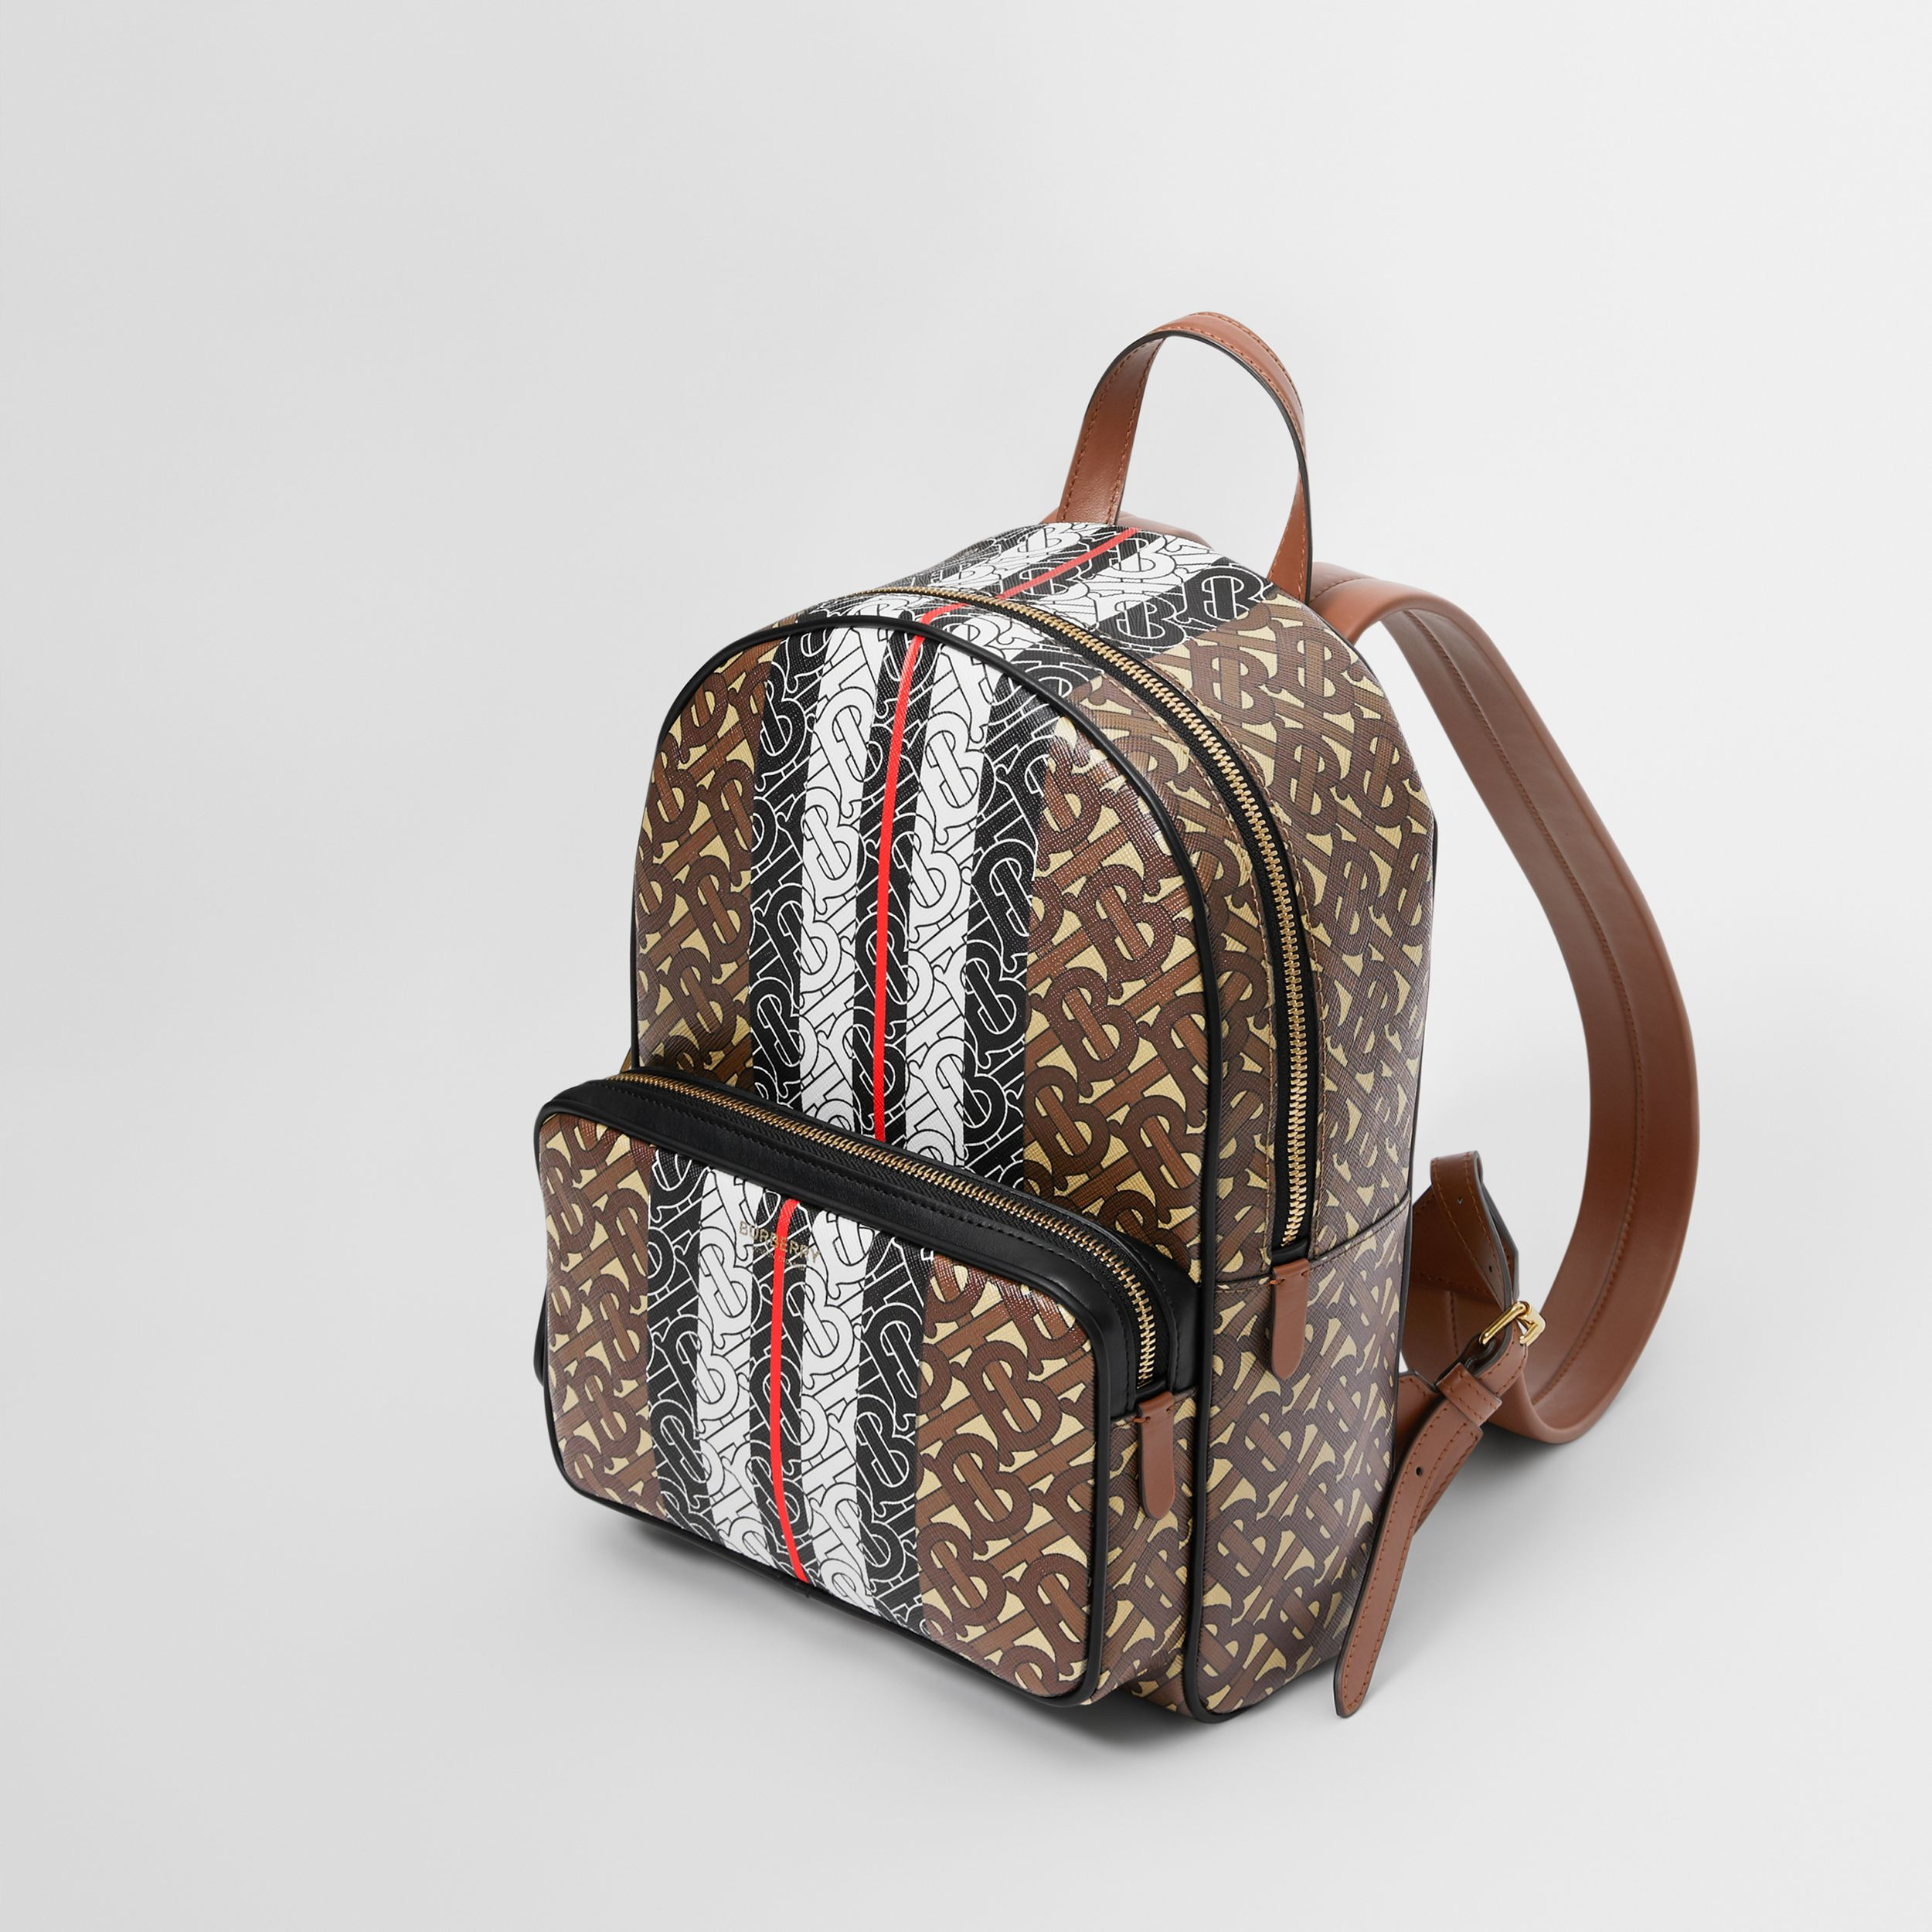 Monogram Stripe Print E-canvas Backpack in Bridle Brown | Burberry - 3